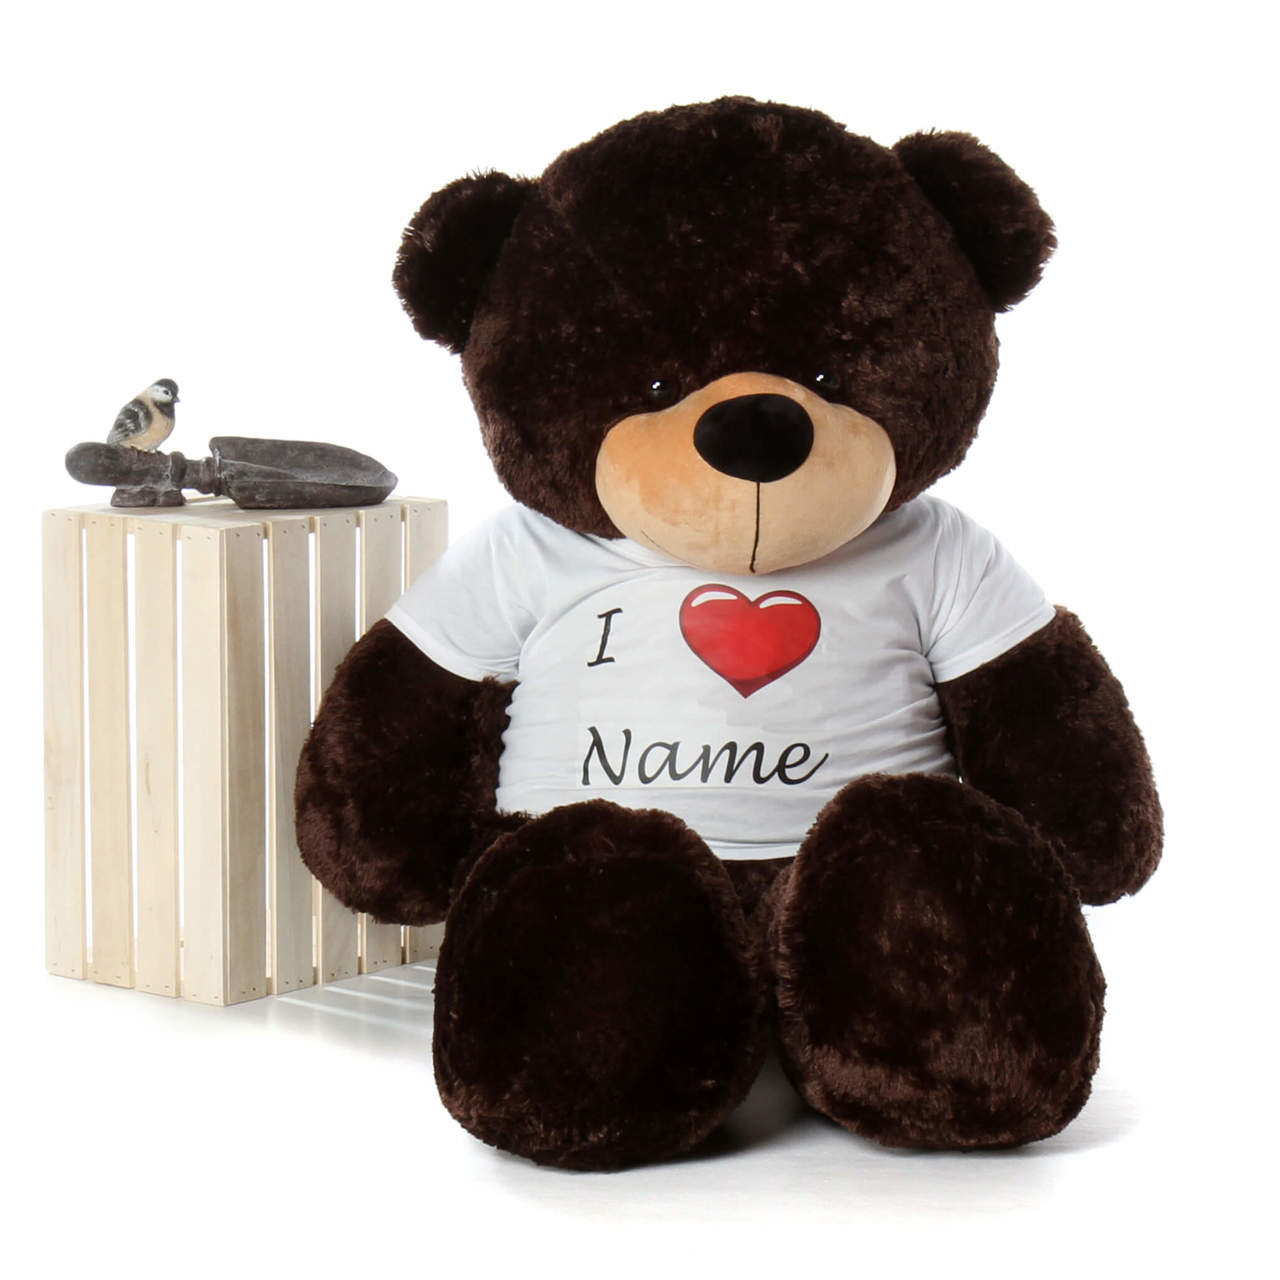 Life Size 5ft Personalized Valentine's Day Teddy Bear Brownie Cuddles dark brown fur